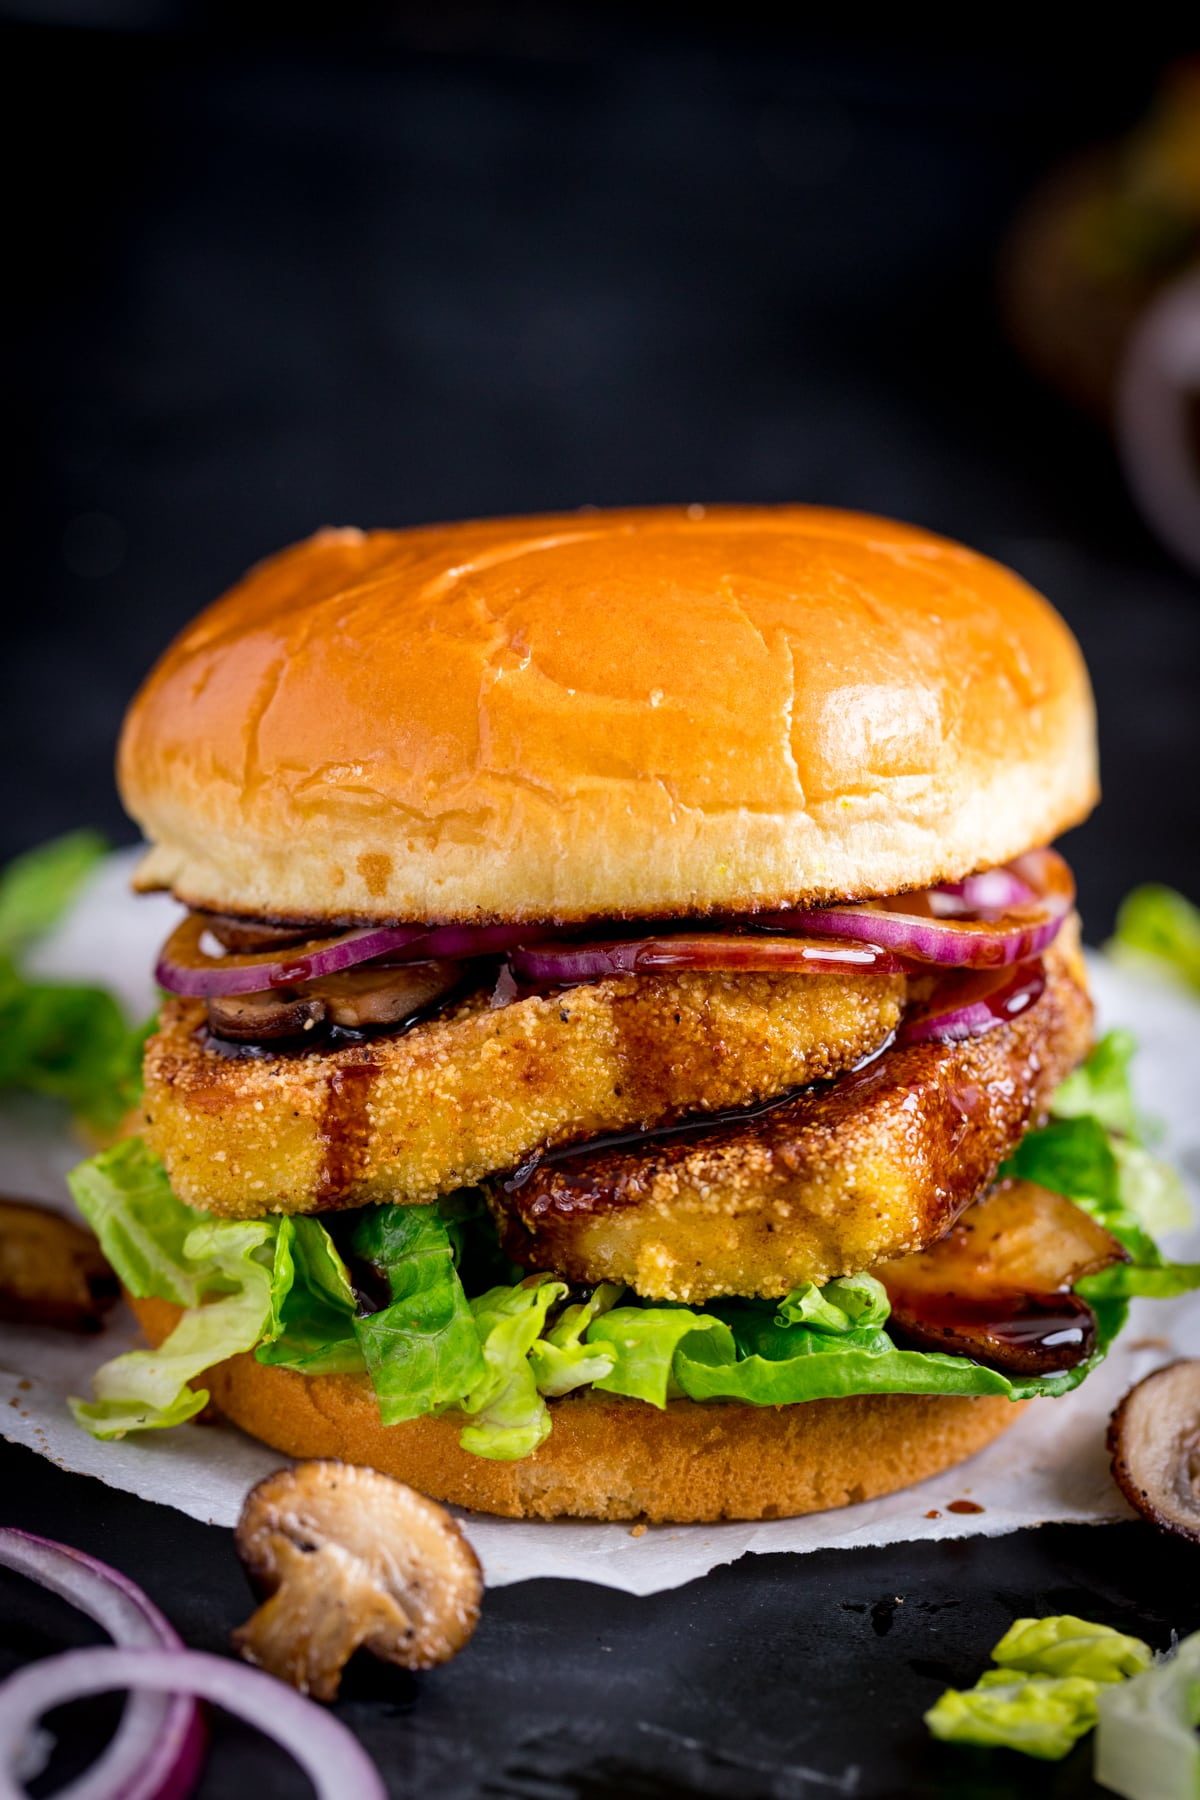 halloumi burger with lettuce, onions and mushrooms against a dark background.